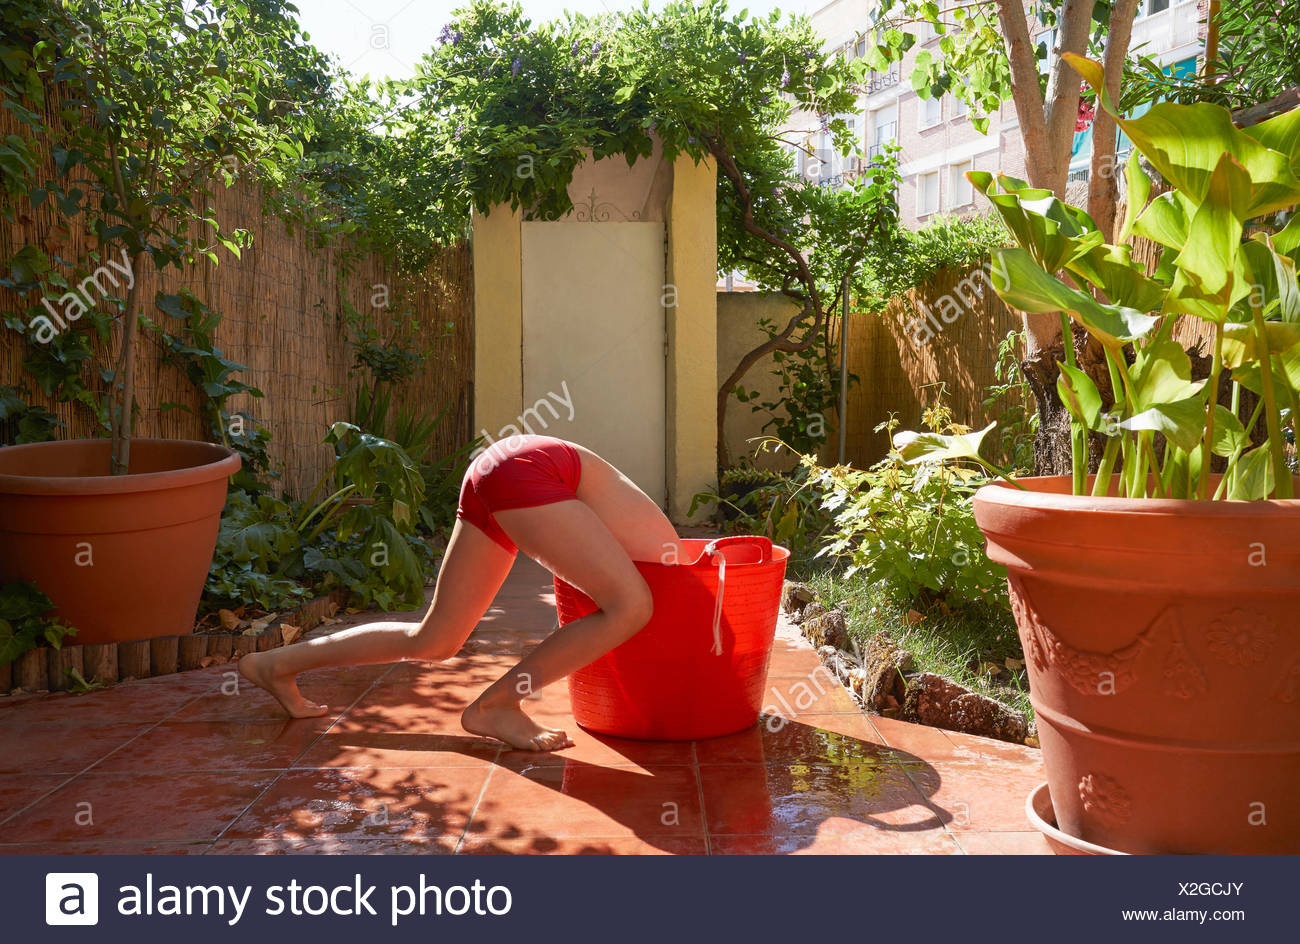 Girl in bikini bottoms bending headfirst into red bucket on patio - Stock Image